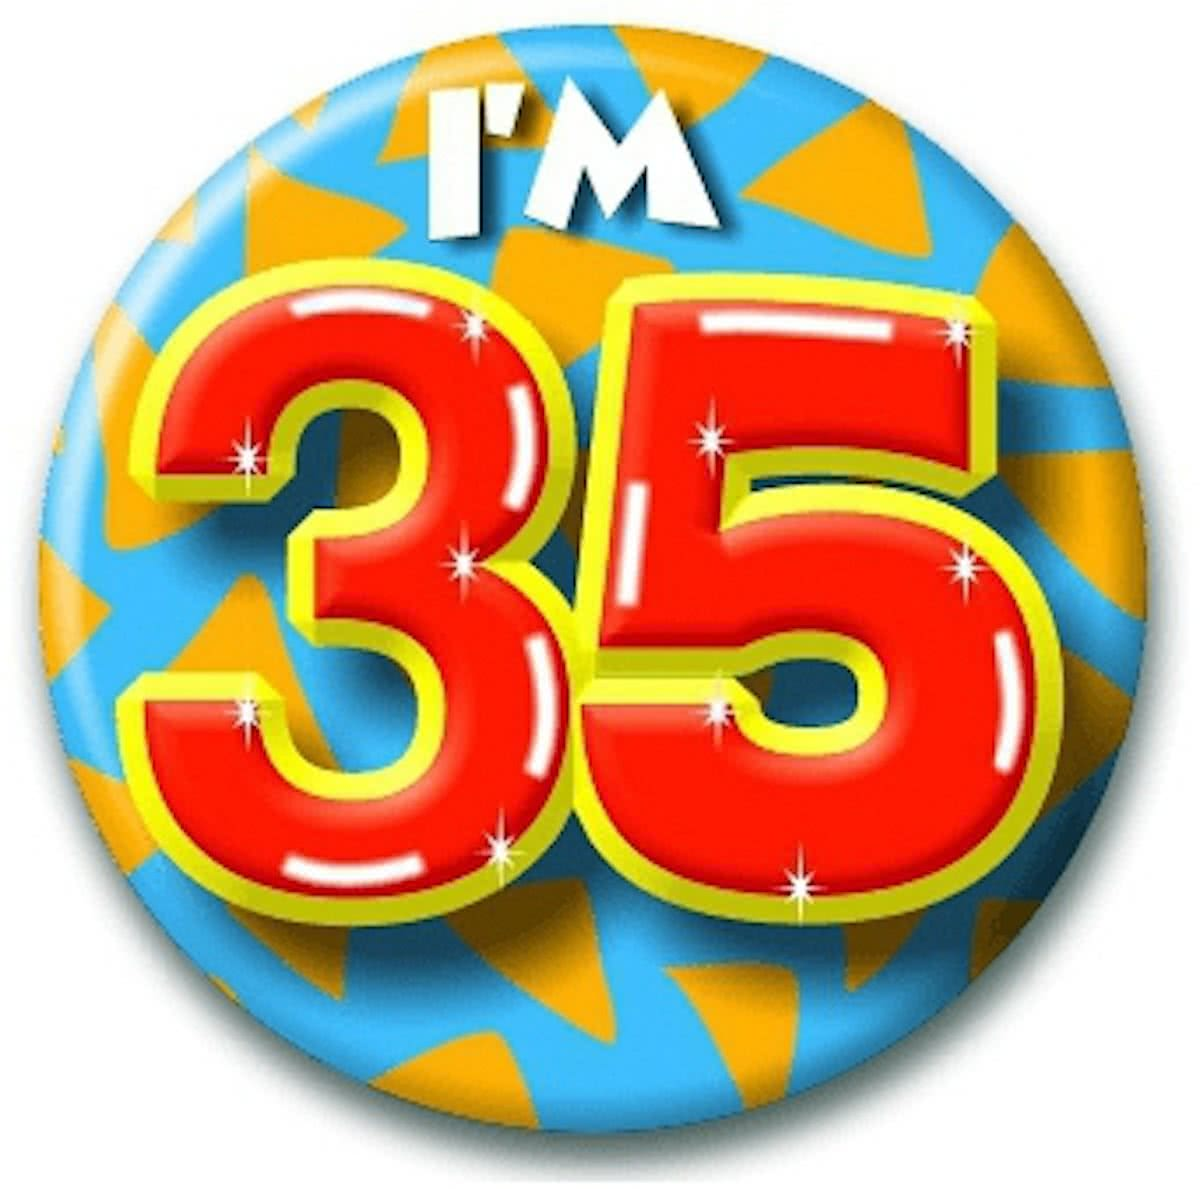 Verjaardags button I am 35